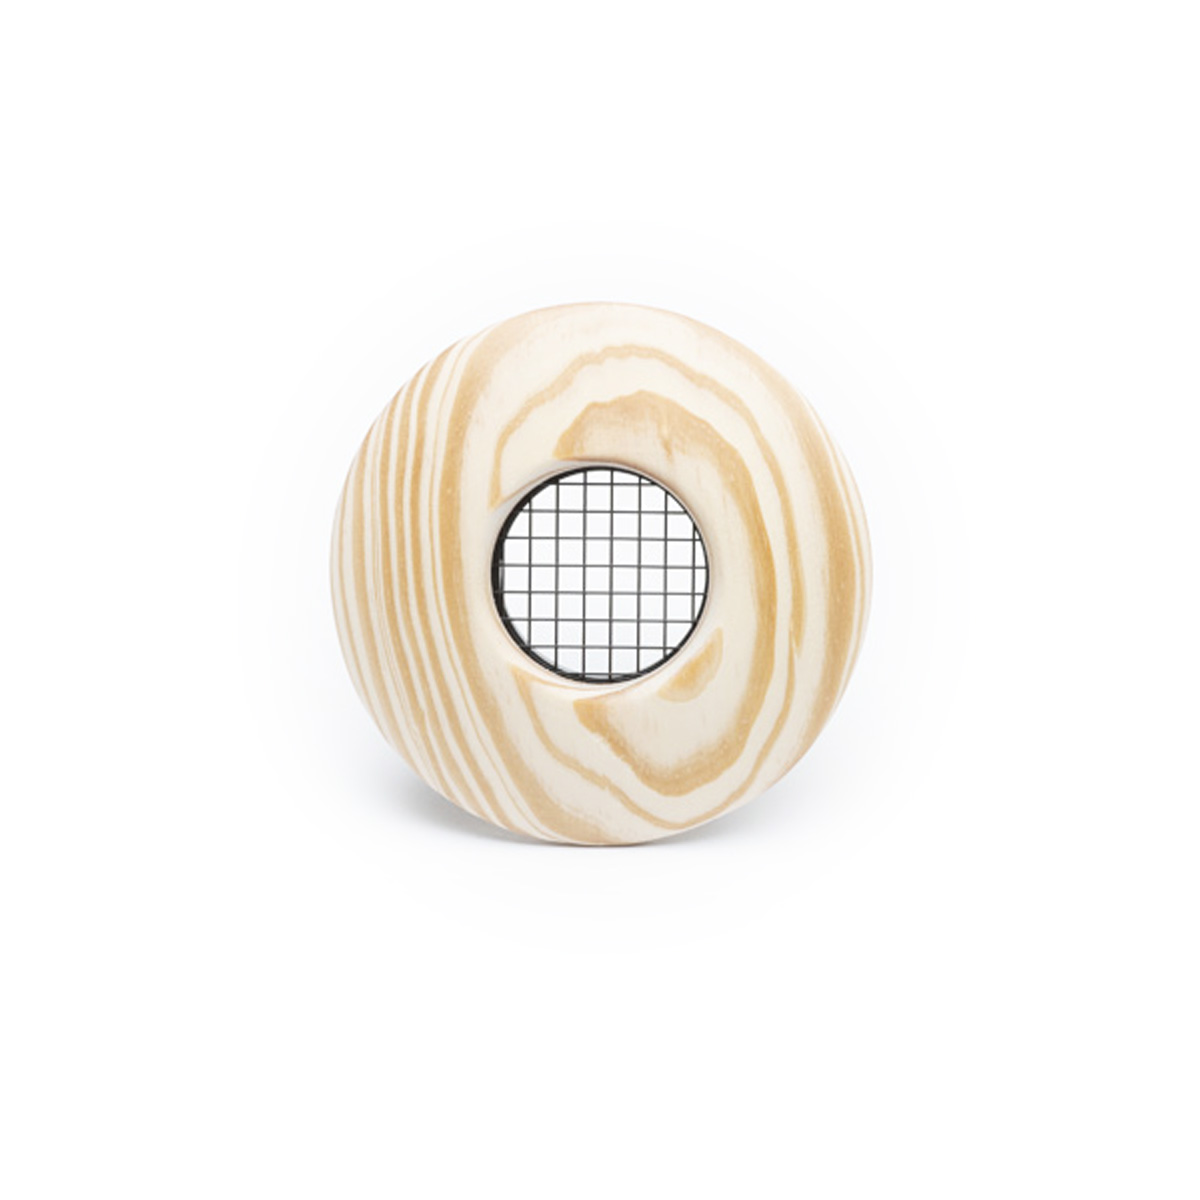 "Round Supply Outlet, 2"", Pine wood, TFS, 6/bx"